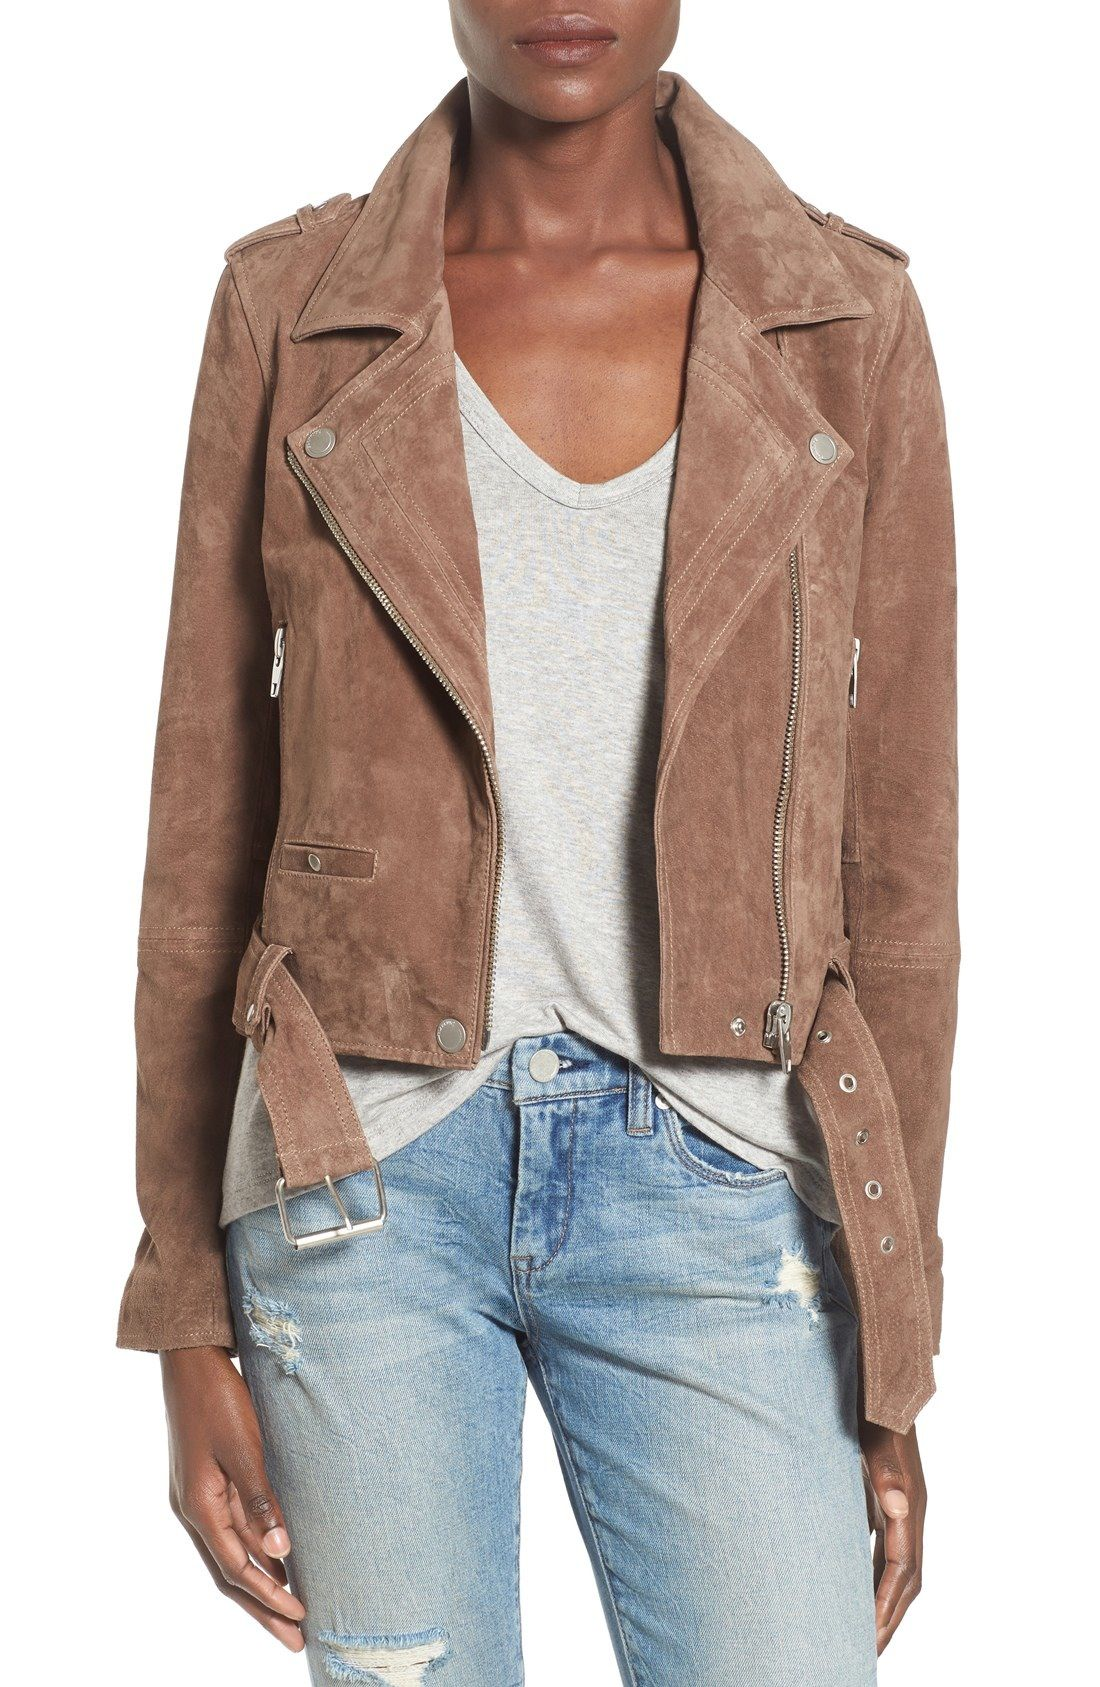 Women's Coats & Jackets Suede jacket outfit, Nordstrom